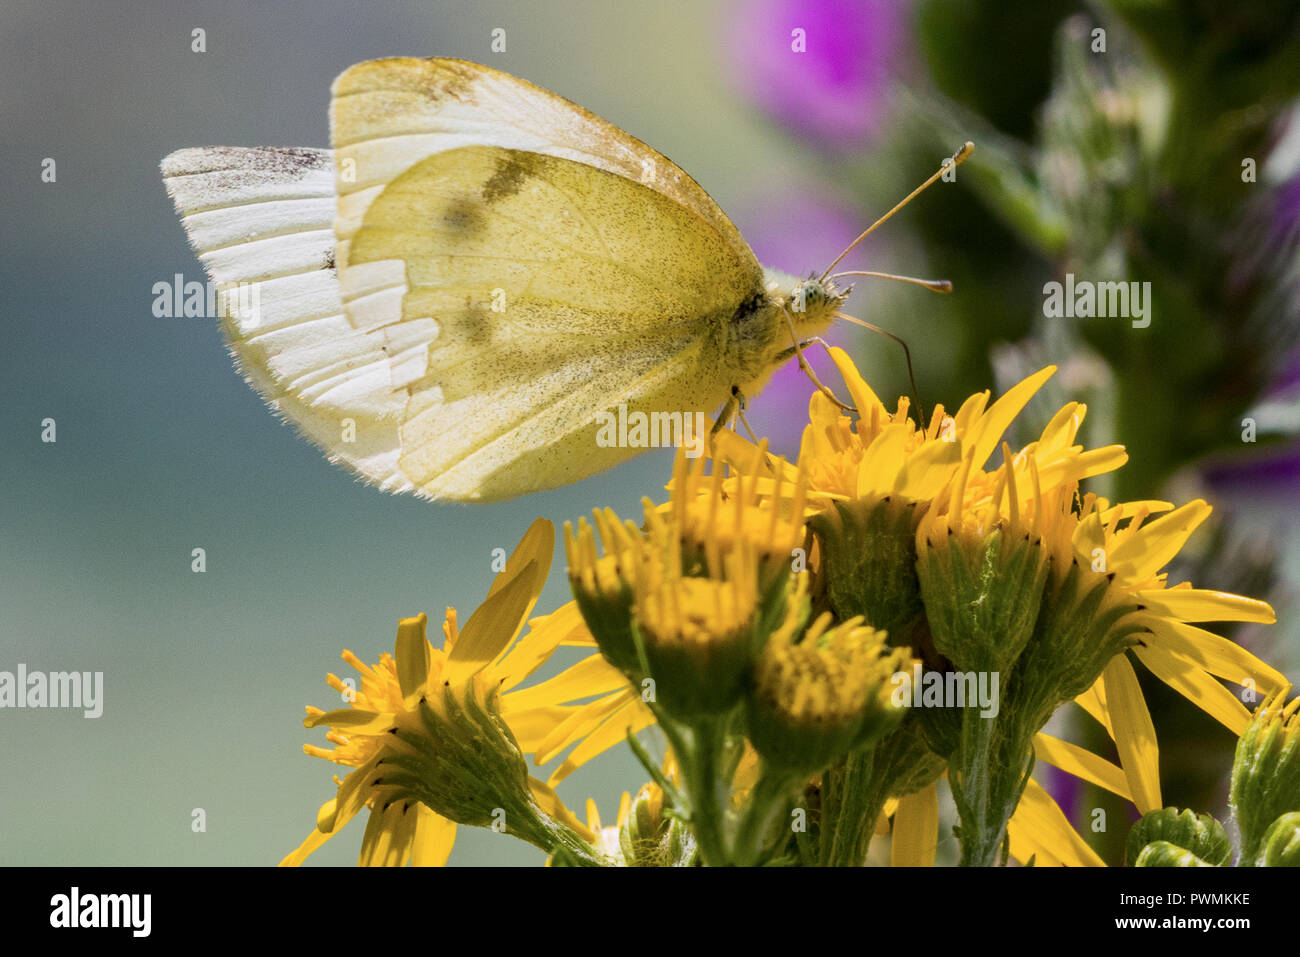 Close up of a Cabbage White Butterfly on yellow flowers with a blurred background - Stock Image